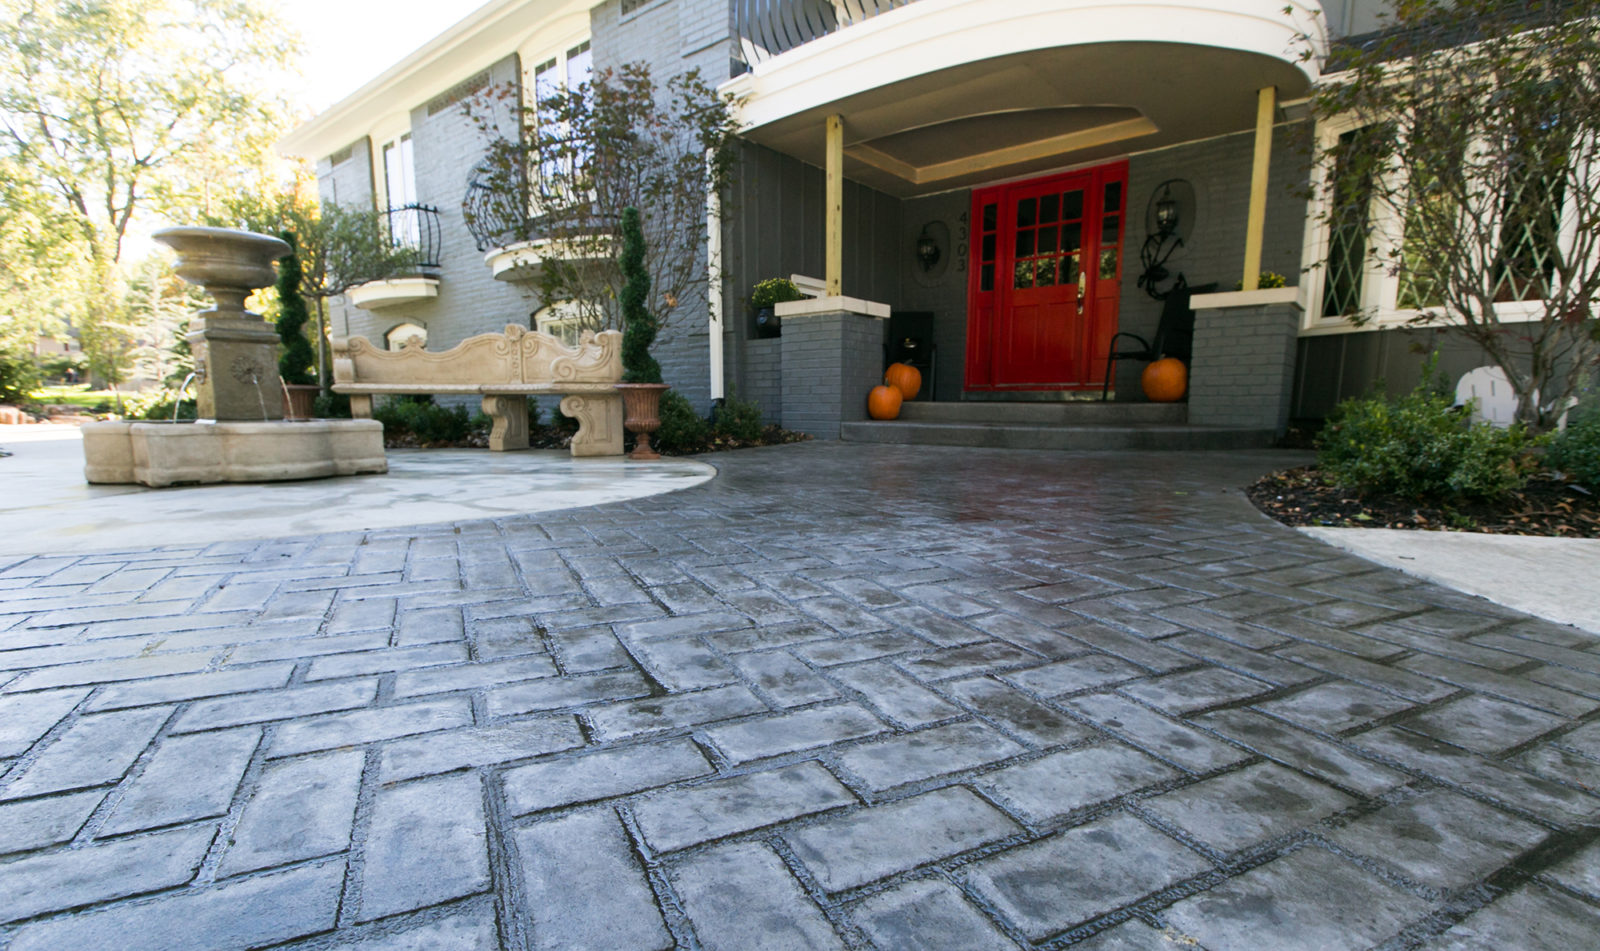 Aesthetic Concrete Designs creates decorative concrete like stamped concrete gray brick for a circular driveway.